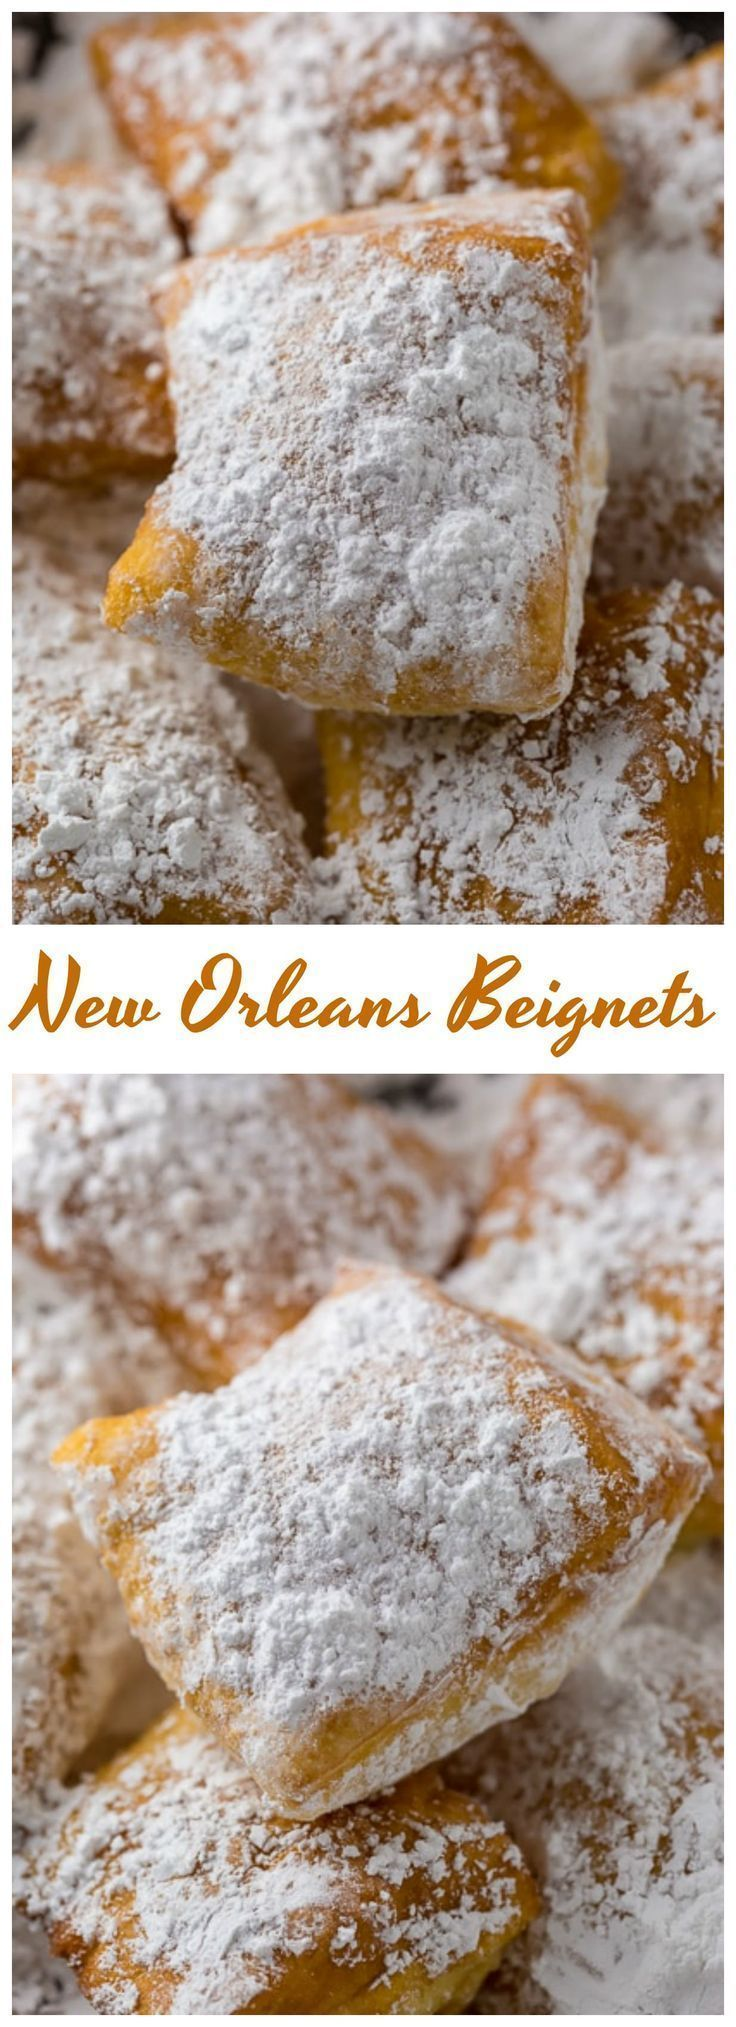 New OrleansStyle Beignets is part of Beignet recipe - Now you can have New OrleansStyle Beignets without leaving home!